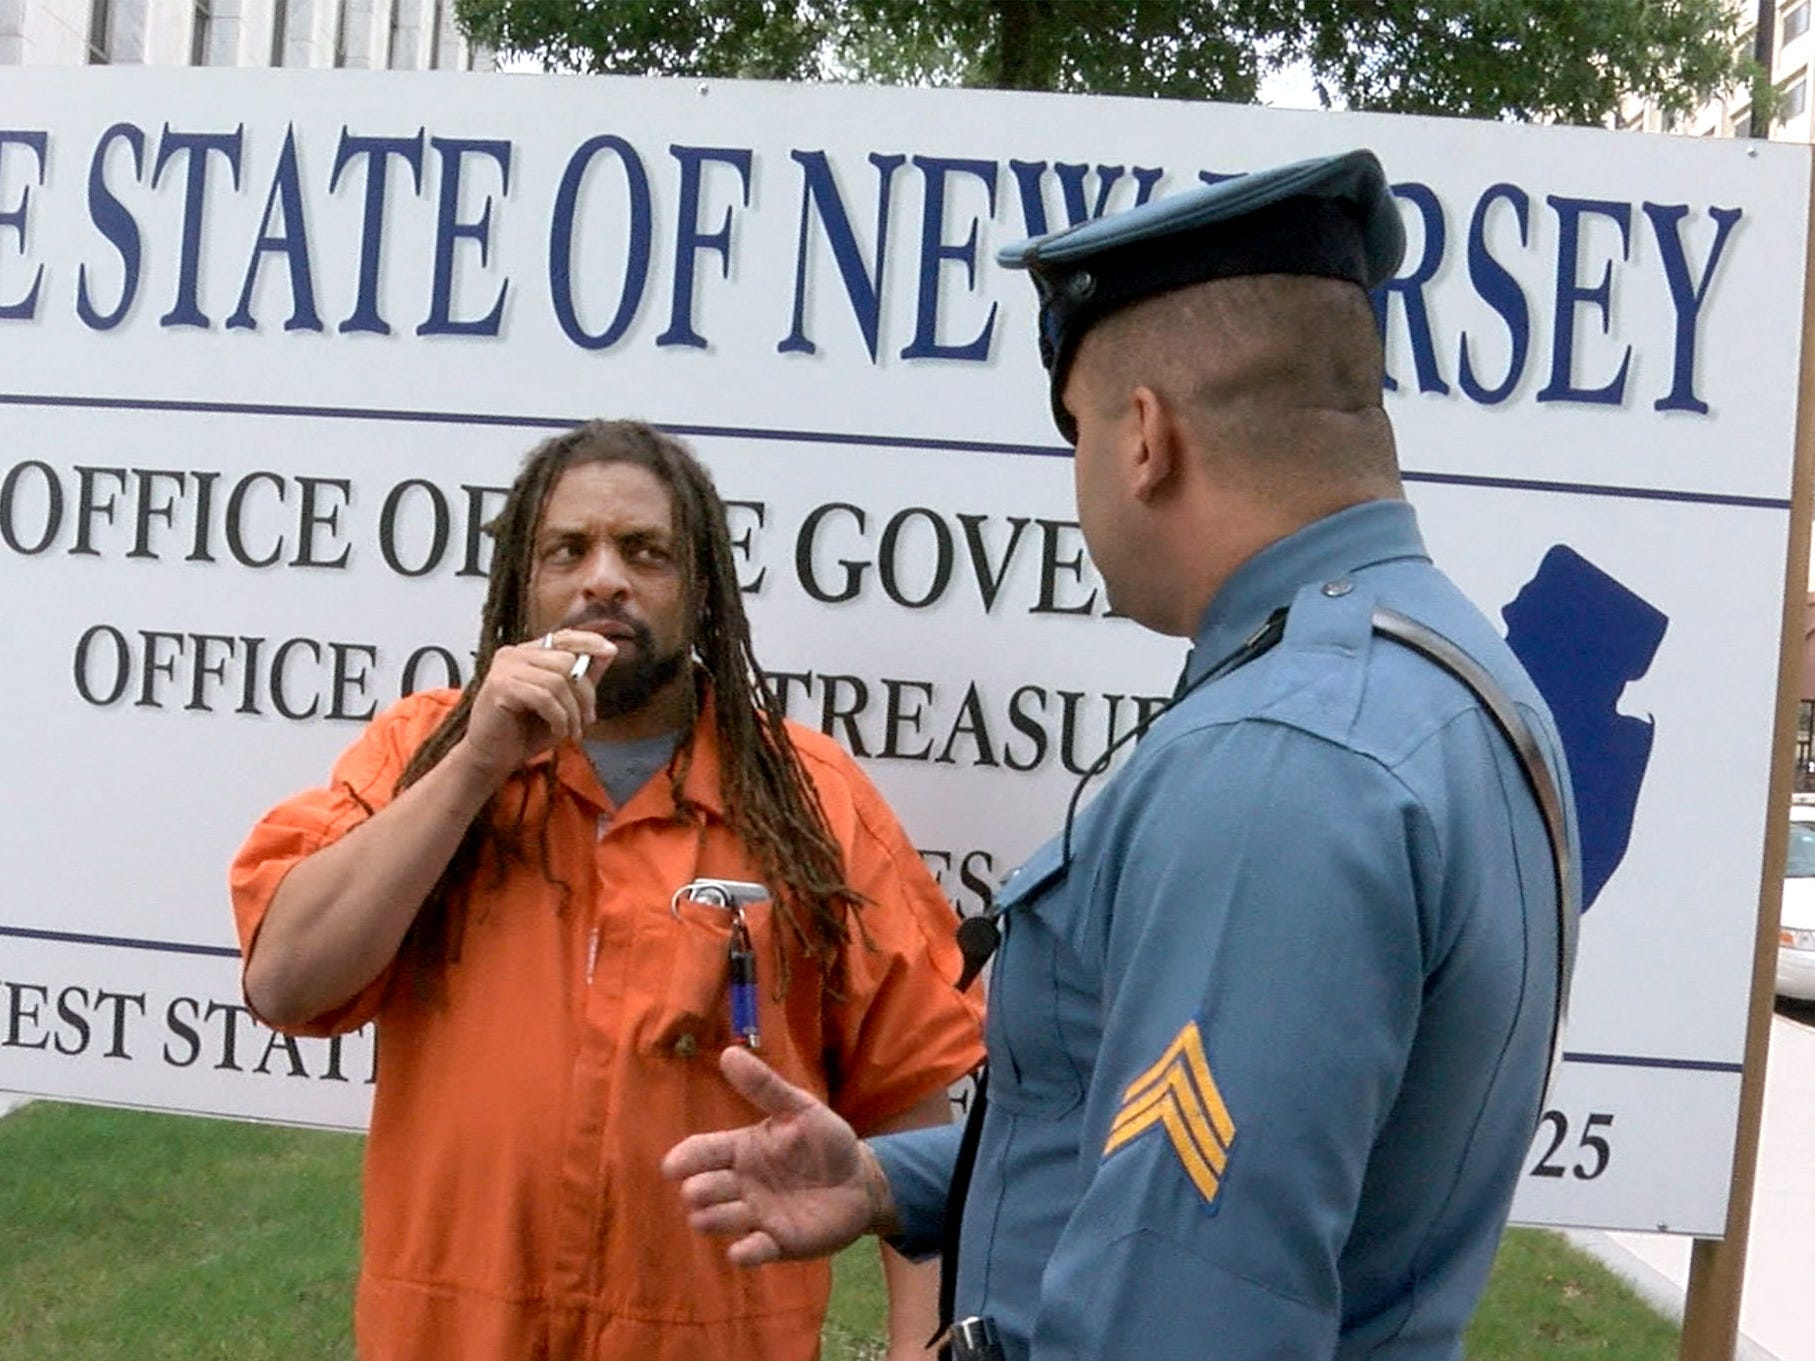 A State Trooper asks Ed Forchion, known best as NJ Weedman, to leave the front of the Governor's office on West State Street in Trenton Thursday, September 27, 2018.  He billed this as his boldest stunt - selling marijuana outside the Statehouse while daring police to arrest him.